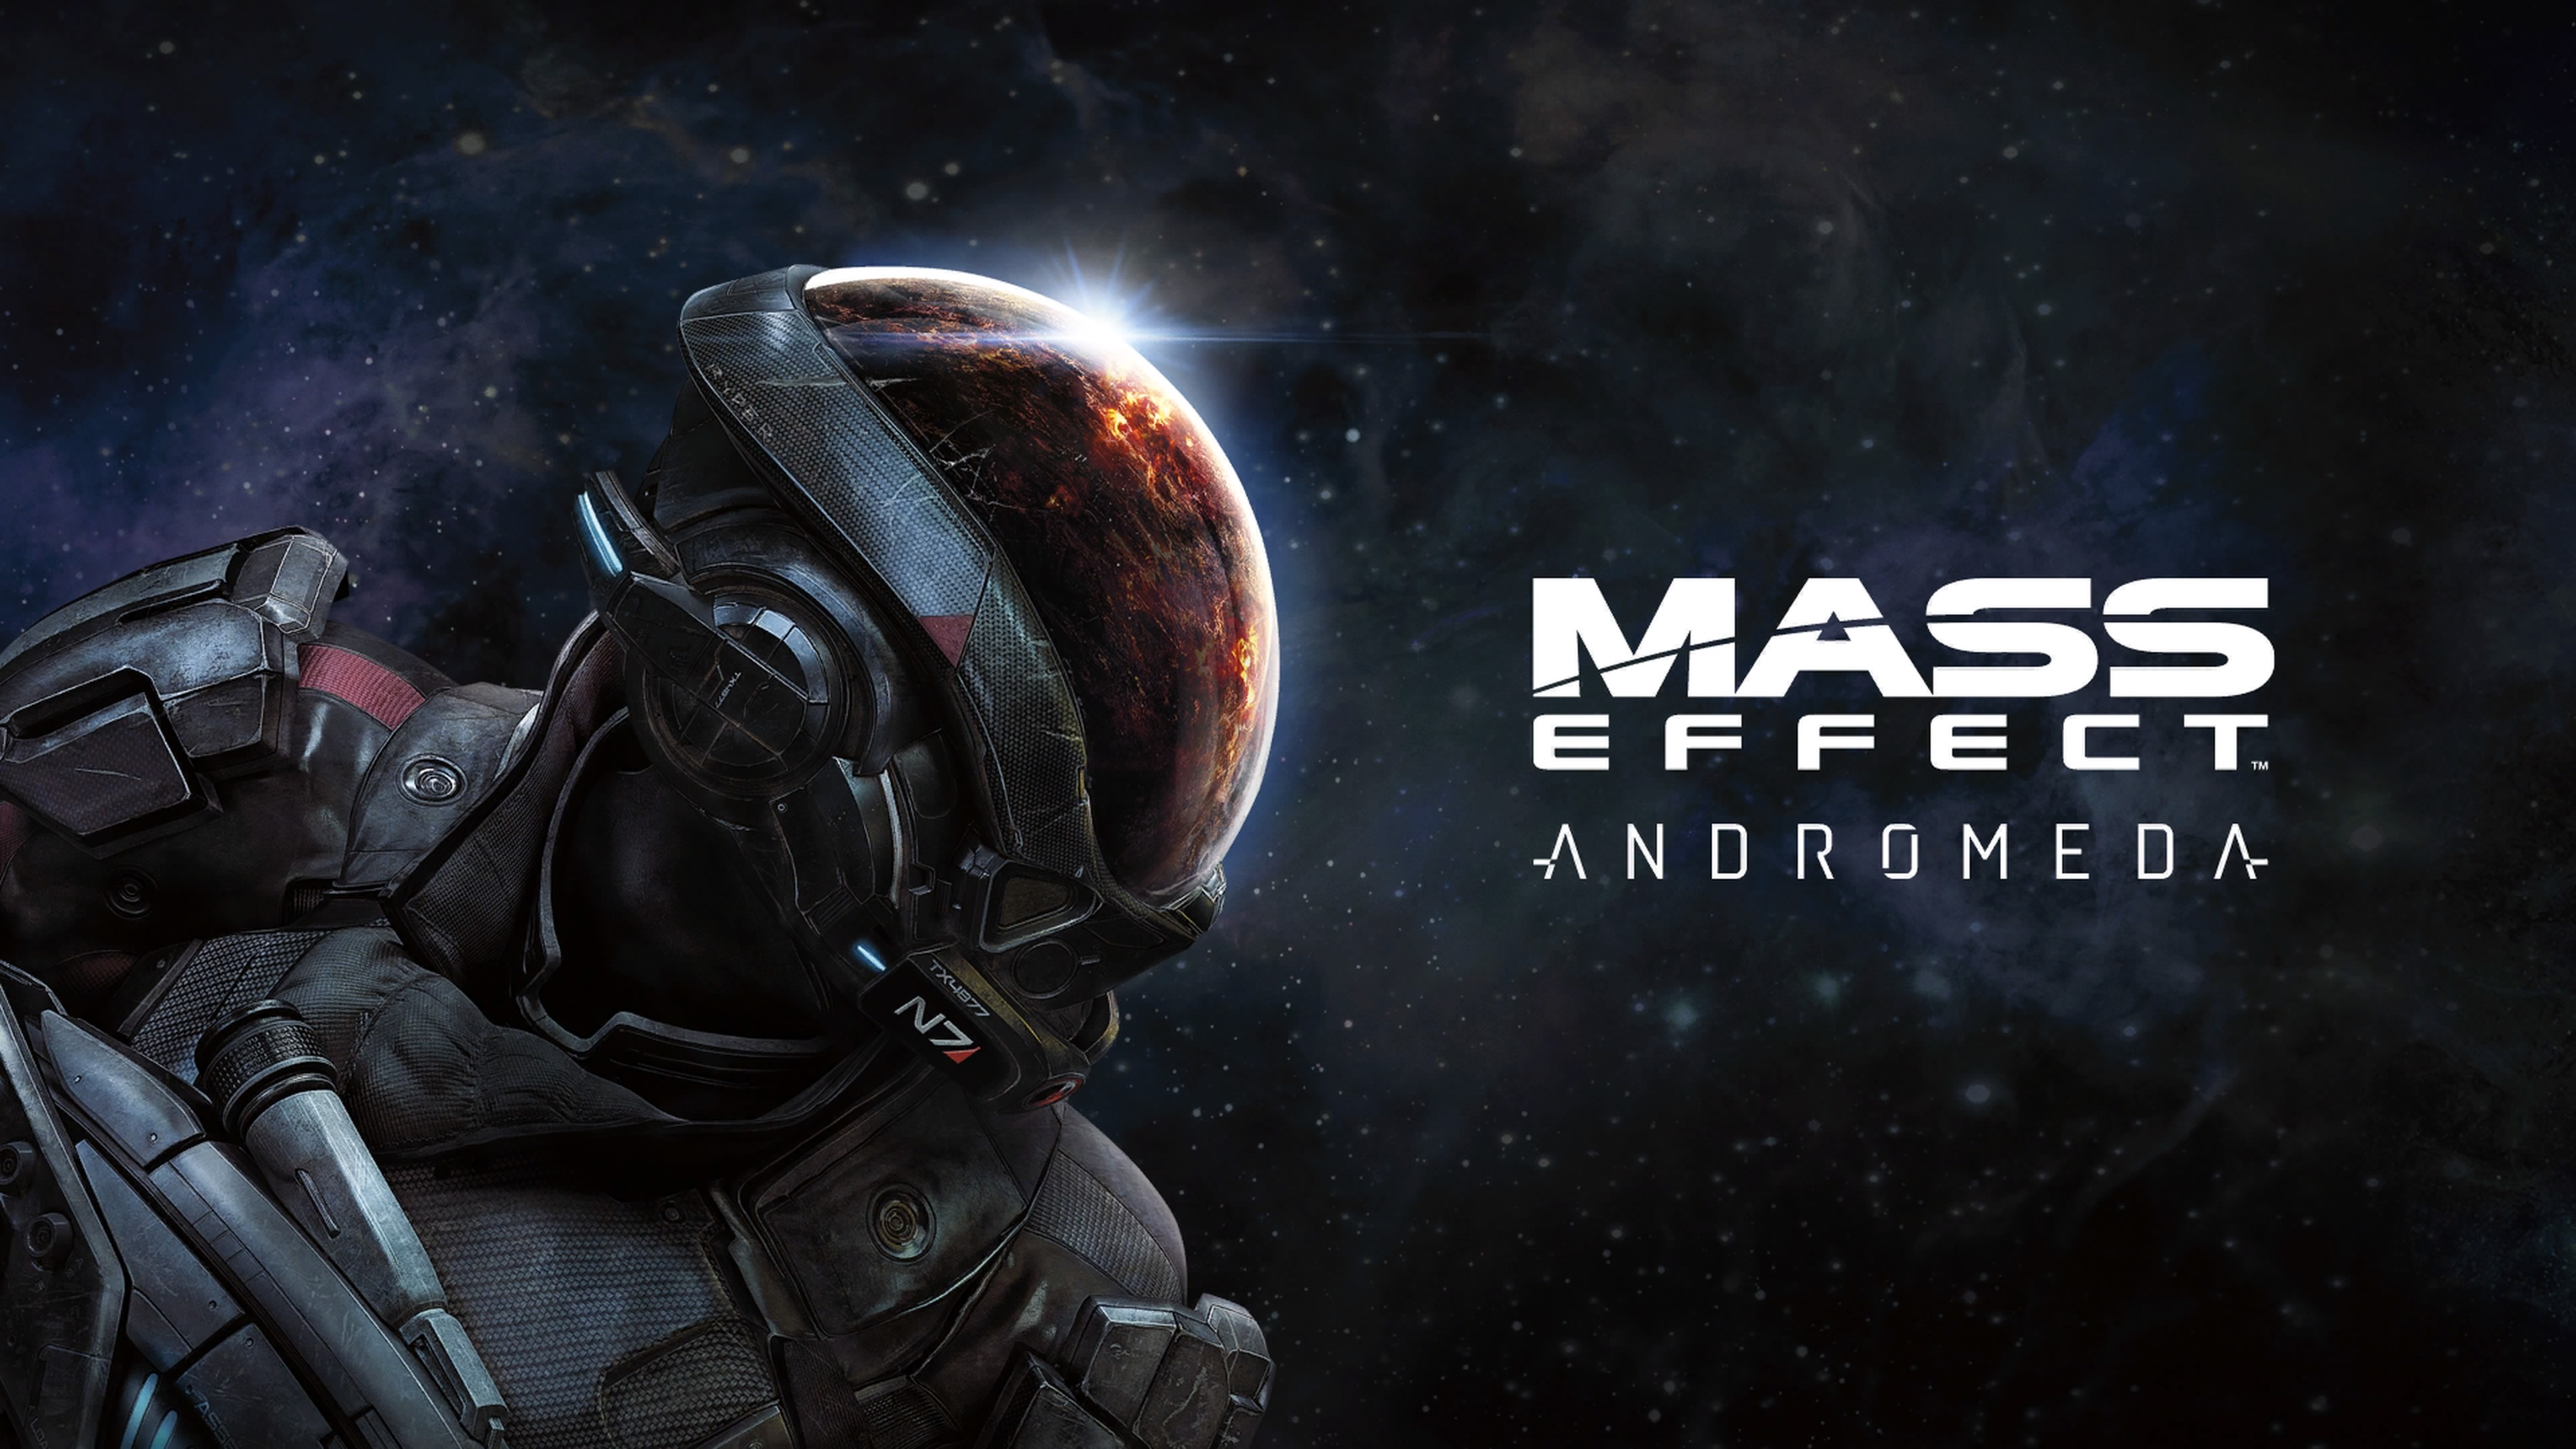 Mass Effect Andromeda 4k, HD Games, 4k Wallpapers, Images